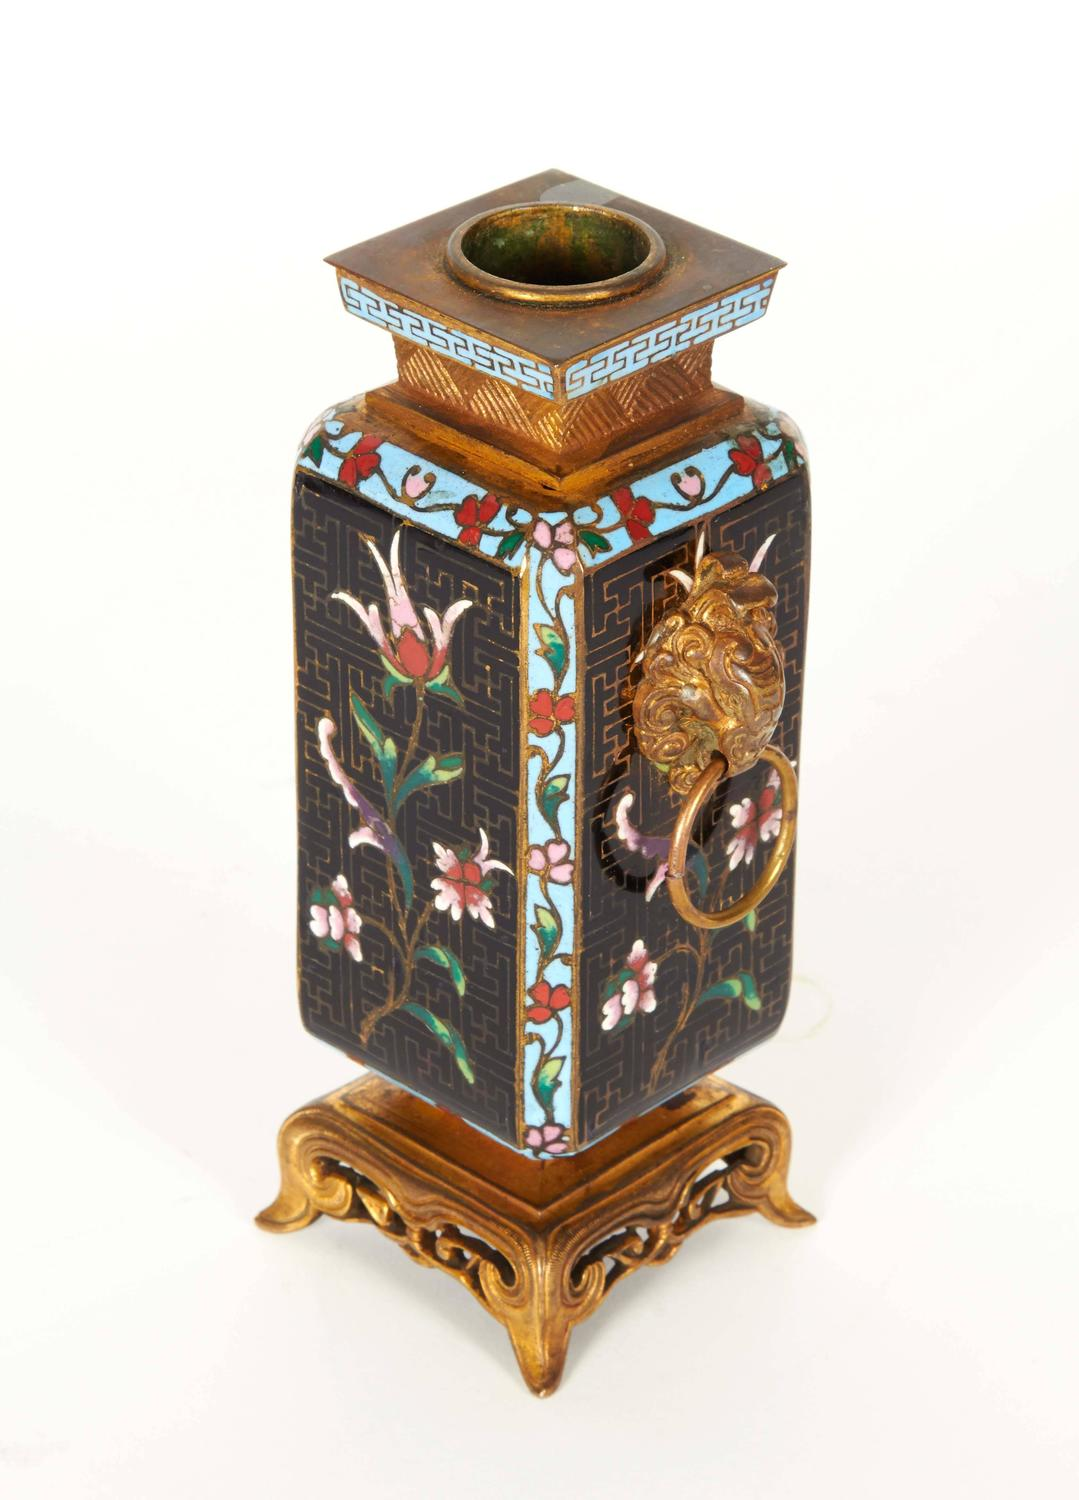 pair of french japonisme ormolu and champlev cloisonn enamel vases for sale at 1stdibs. Black Bedroom Furniture Sets. Home Design Ideas